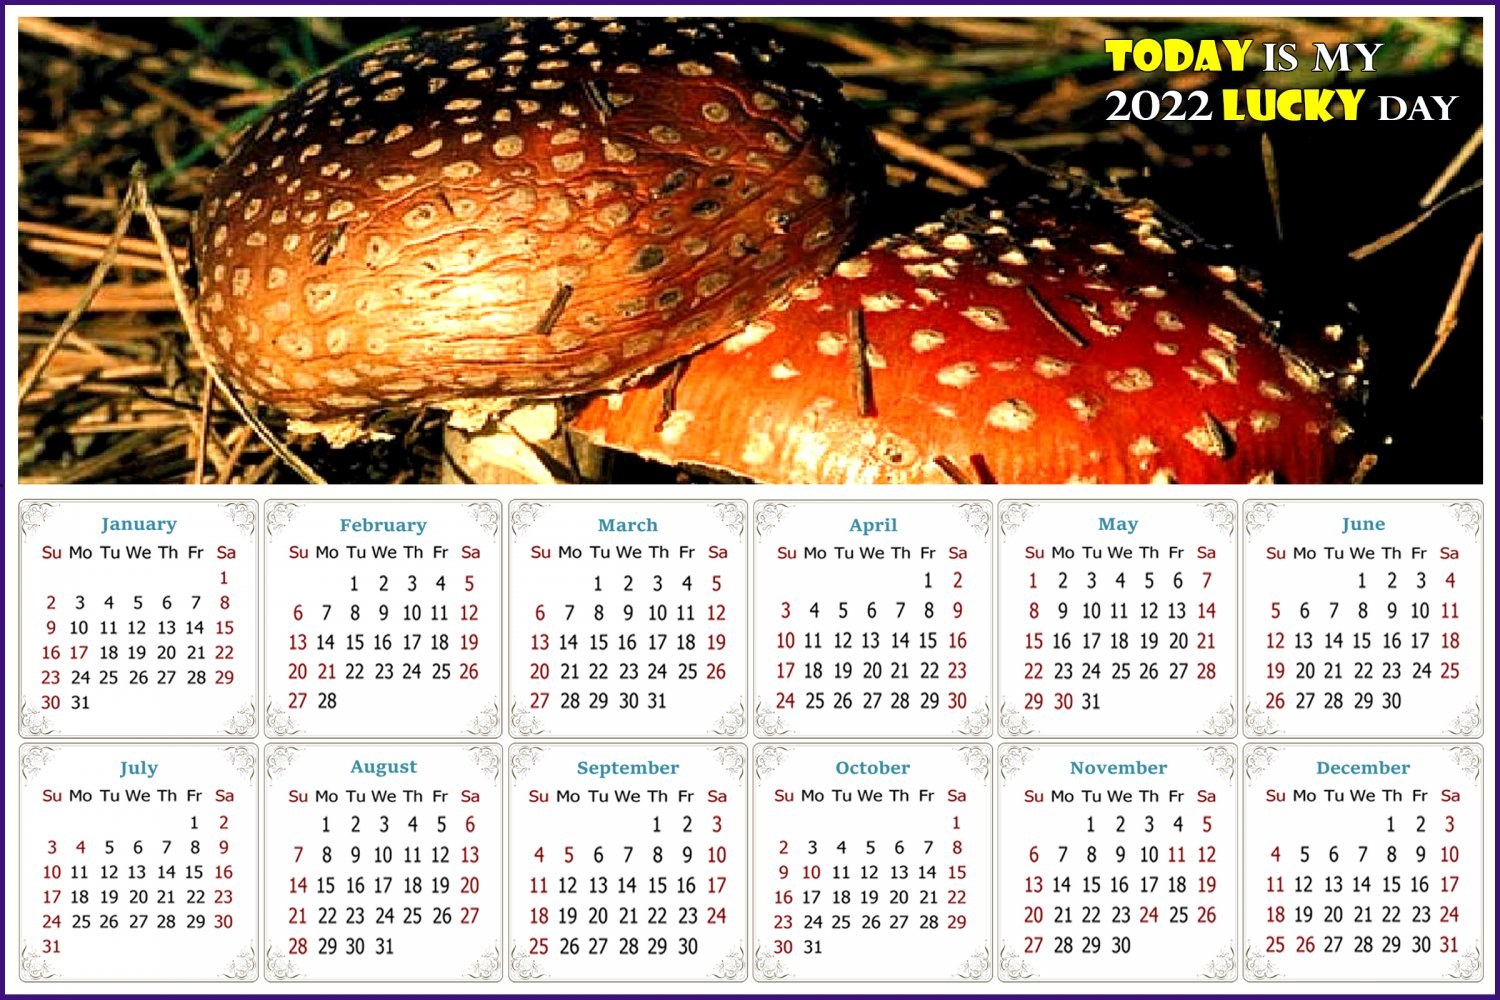 2022 Magnetic Calendar - Calendar Magnets - Today is my Lucky Day - Edition #38